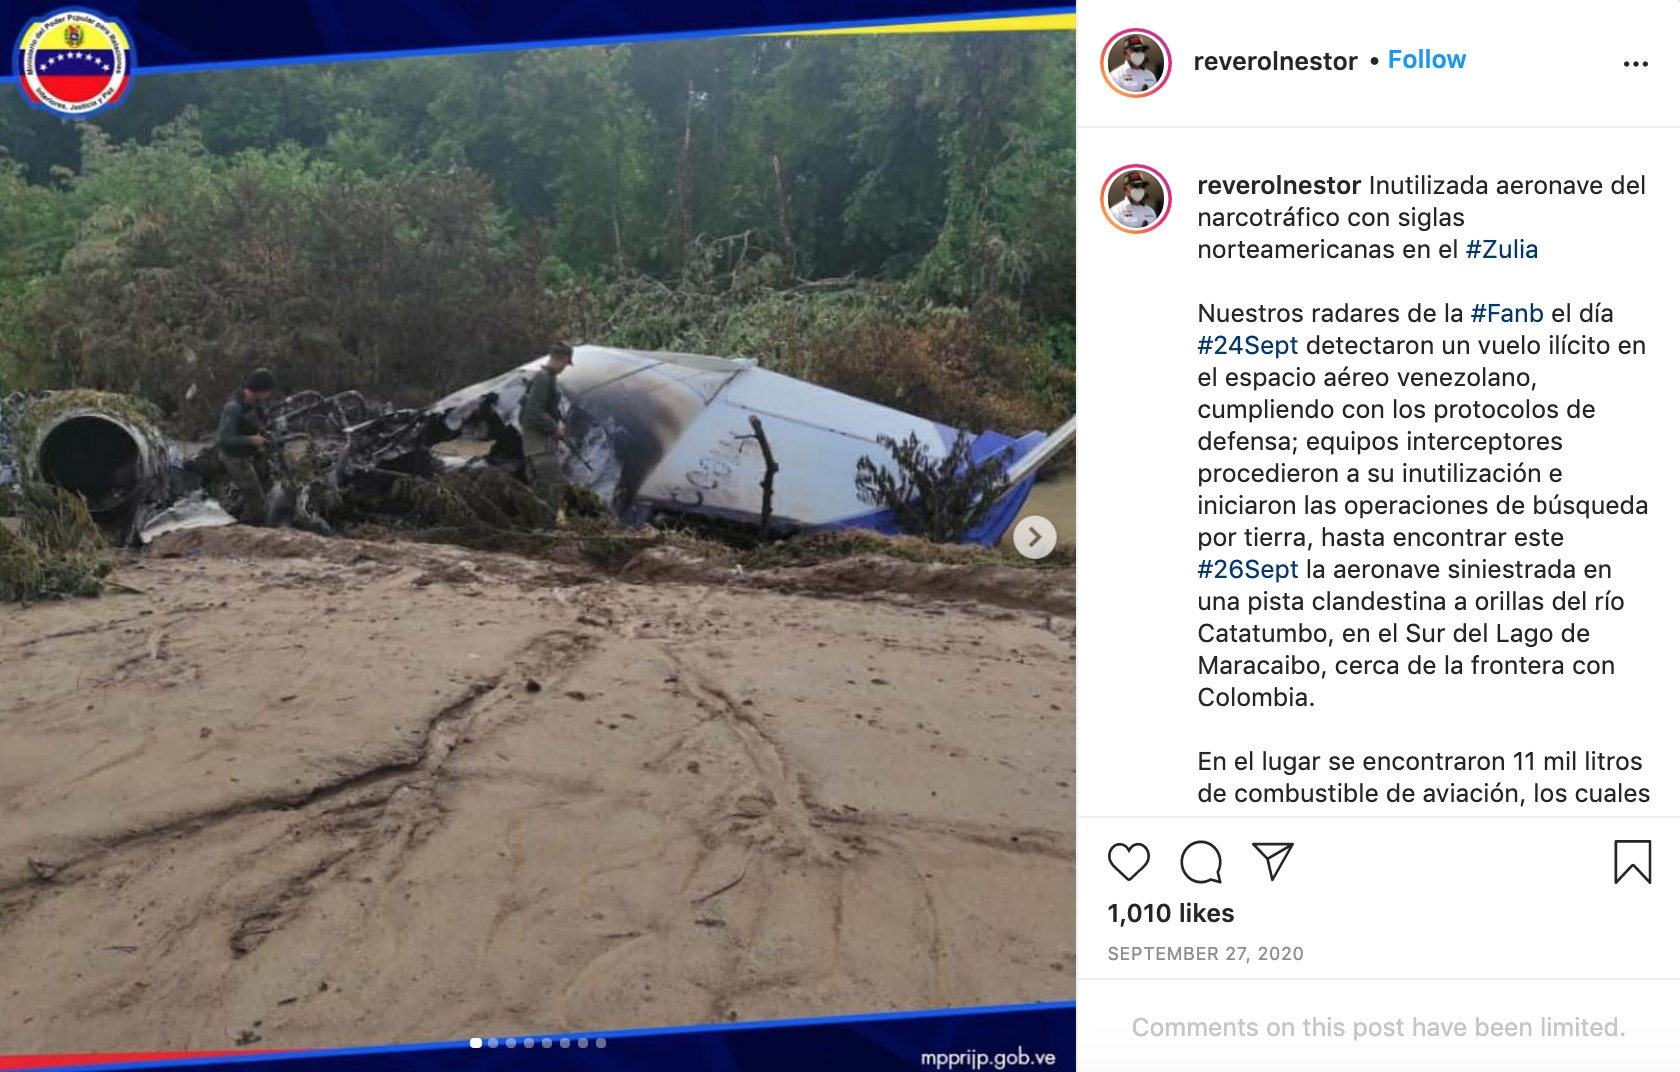 Flying High: The US Connection to Venezuela's 'Narco-Planes' – bellingcat